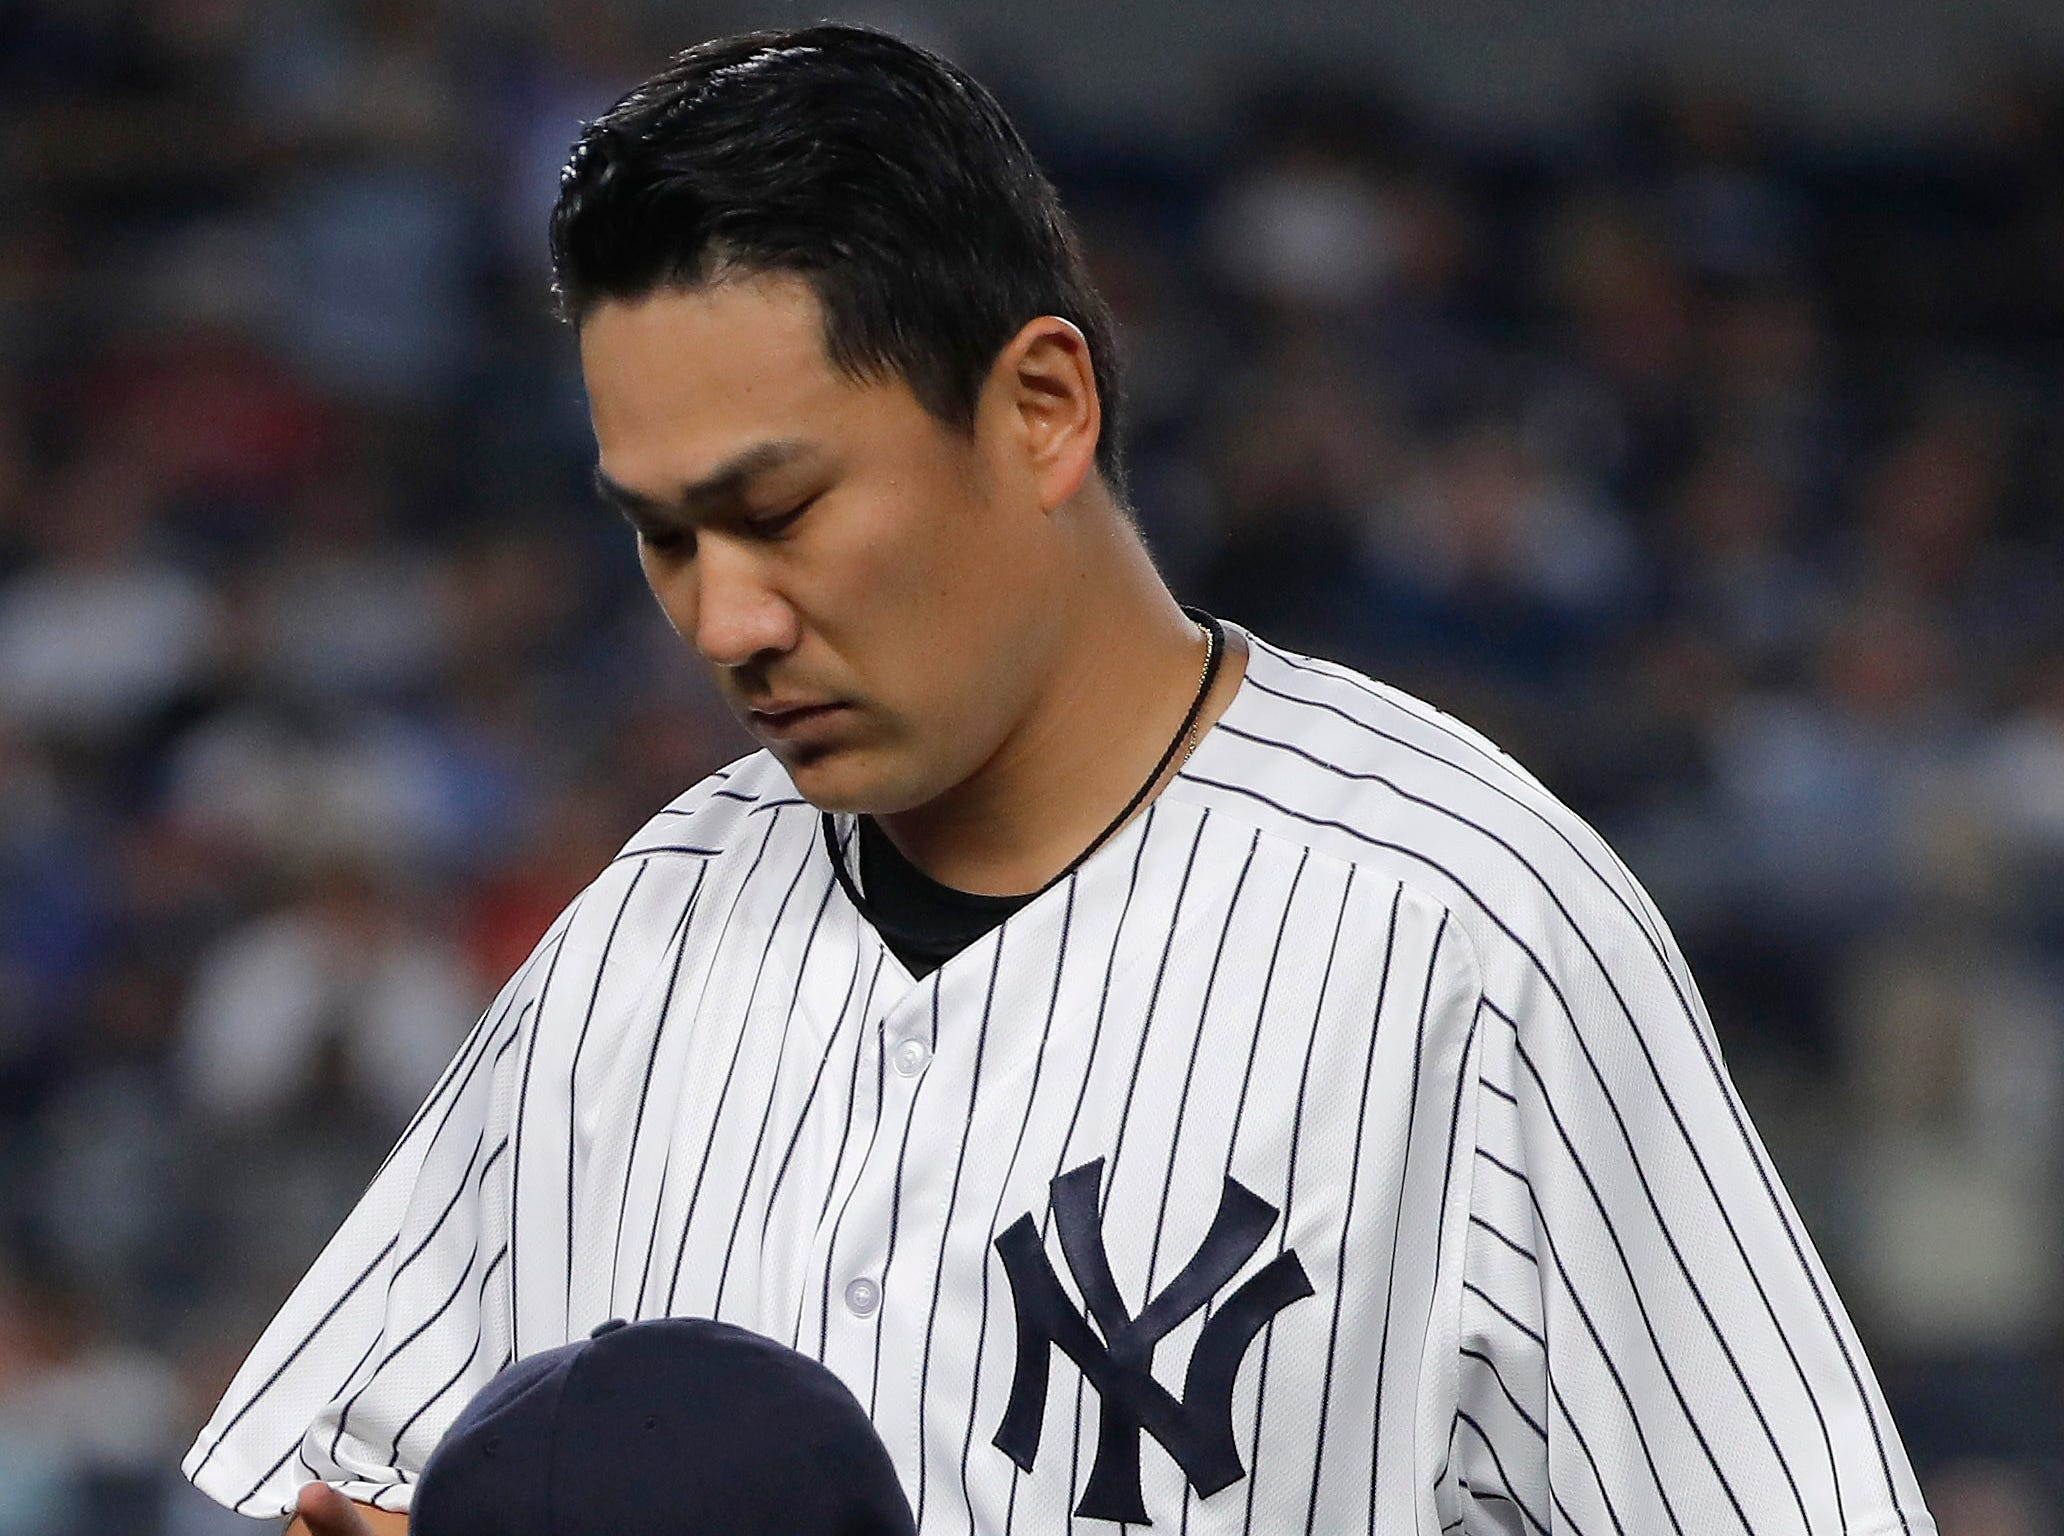 New York Yankees starting pitcher Masahiro Tanaka walks off the field at the end of the top of the fourth inning of a baseball game against the Texas Rangers, Friday, Aug. 10, 2018, in New York.